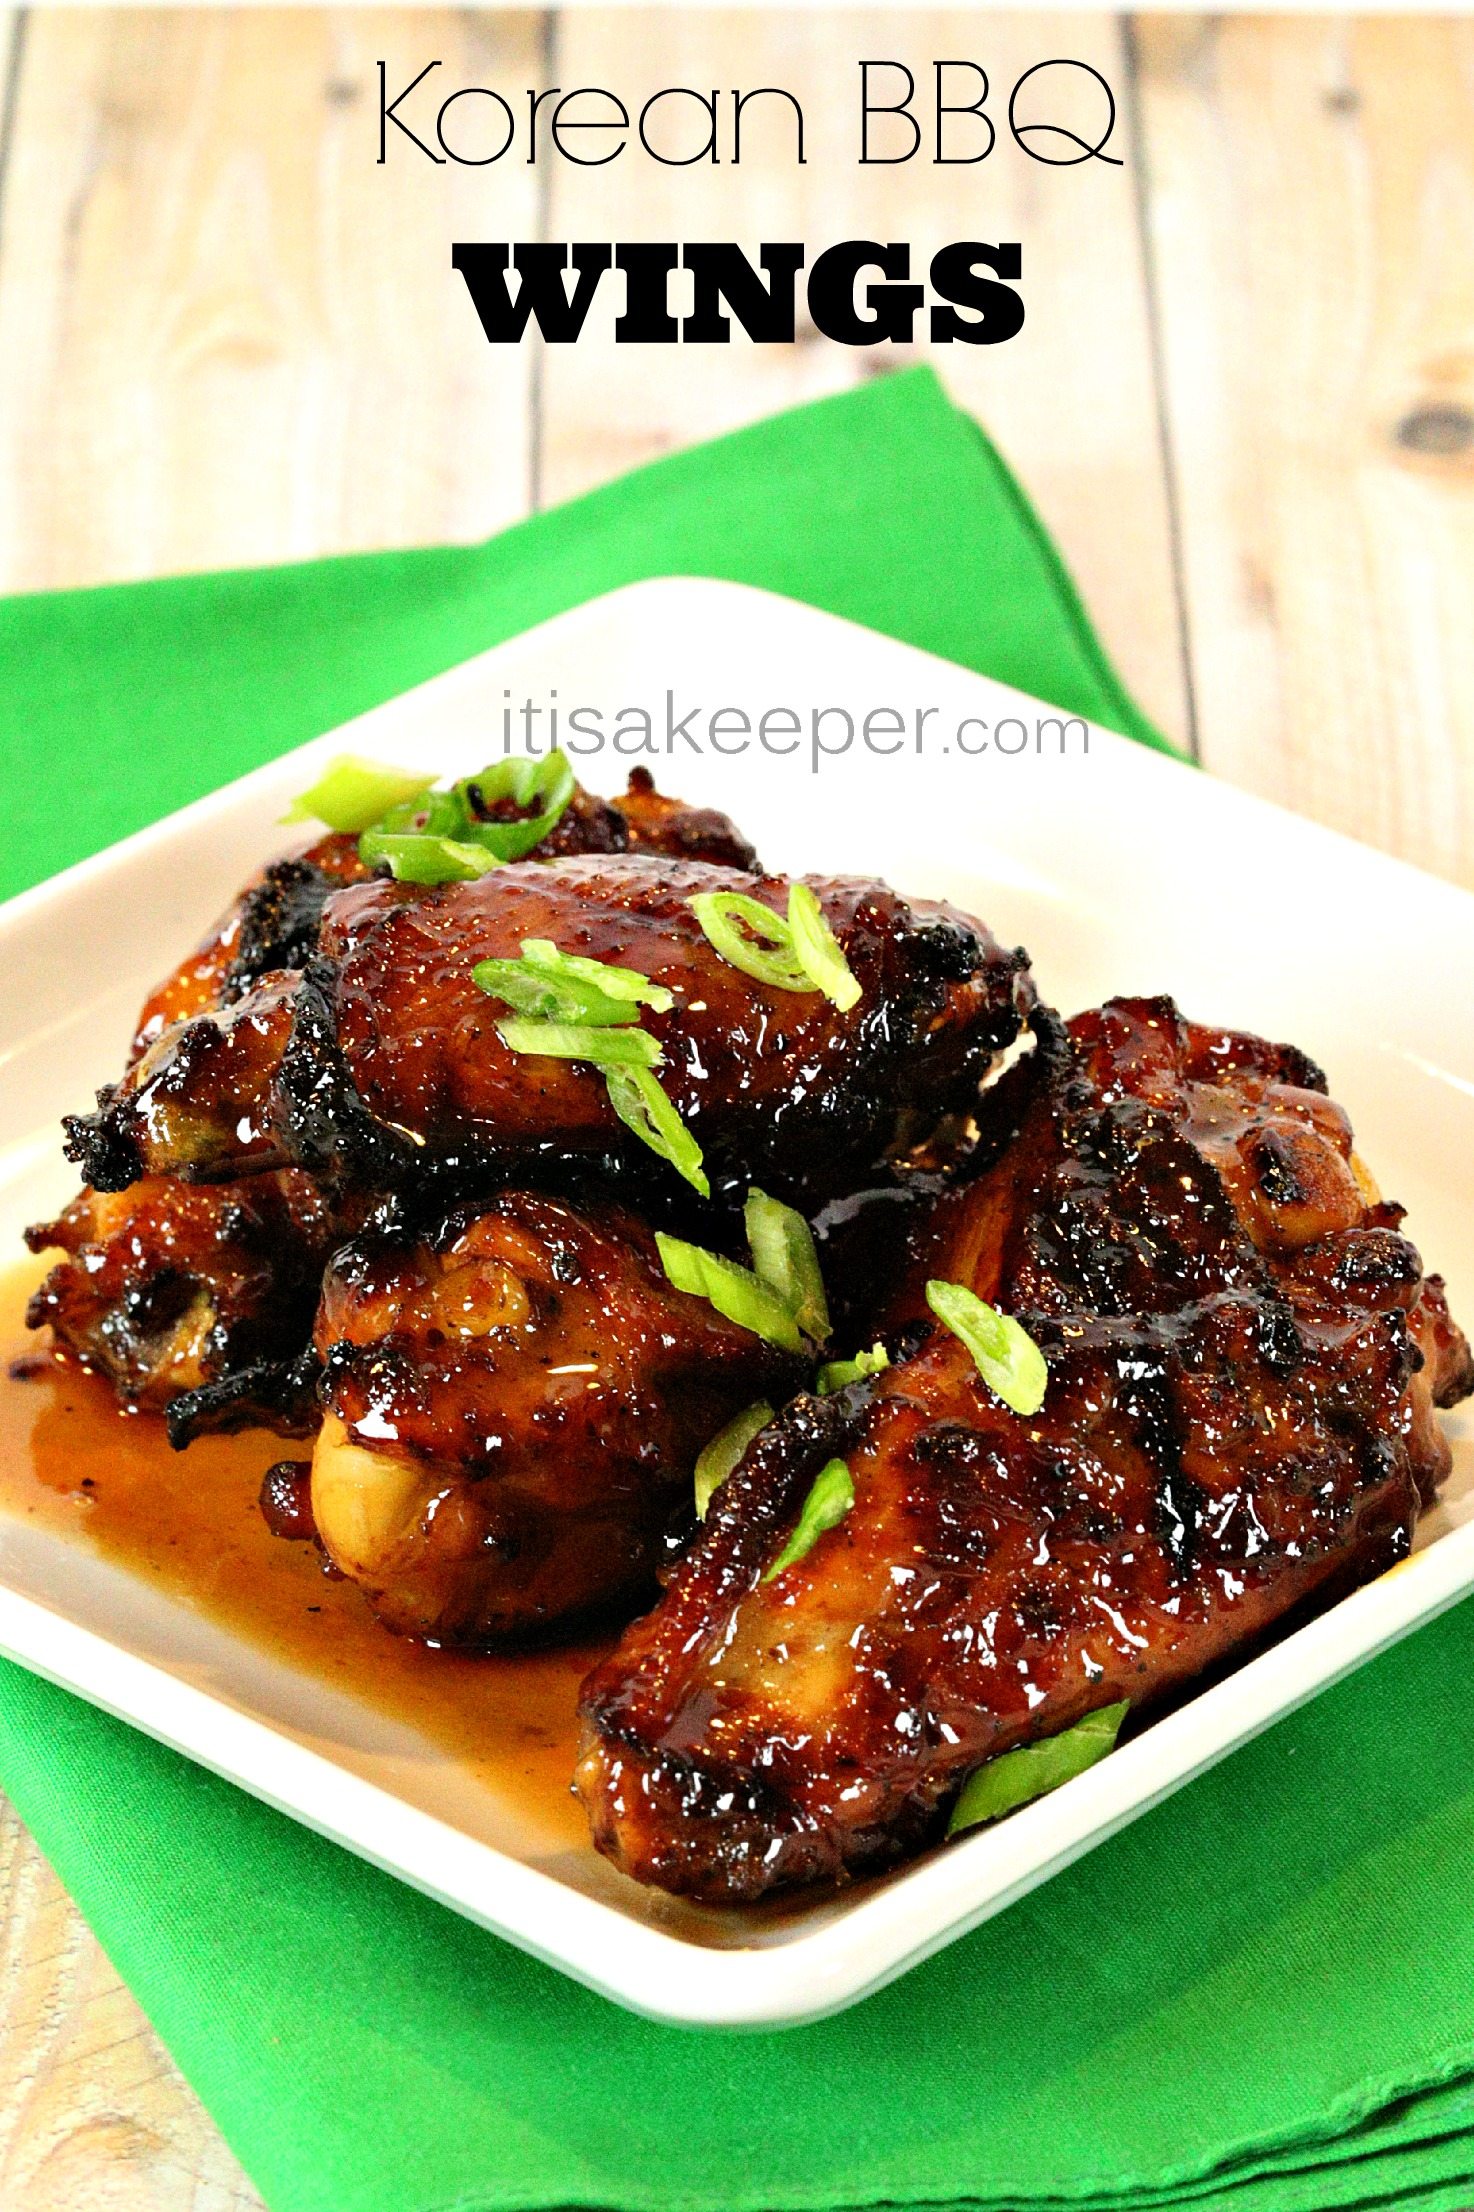 Korean BBQ Grilled Wings